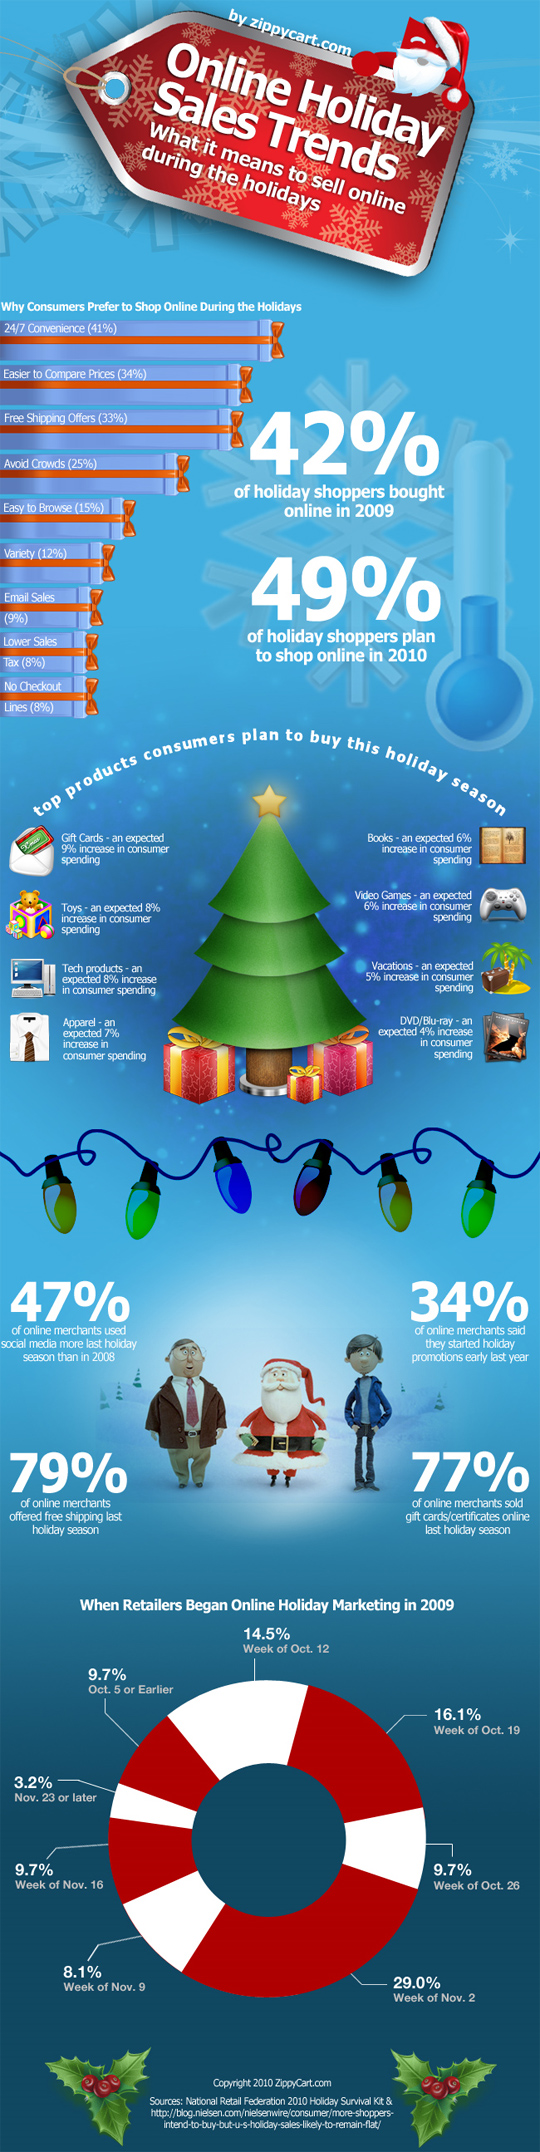 7 Revealing Infographics About [ONLINE] Holiday Sales Trends 4